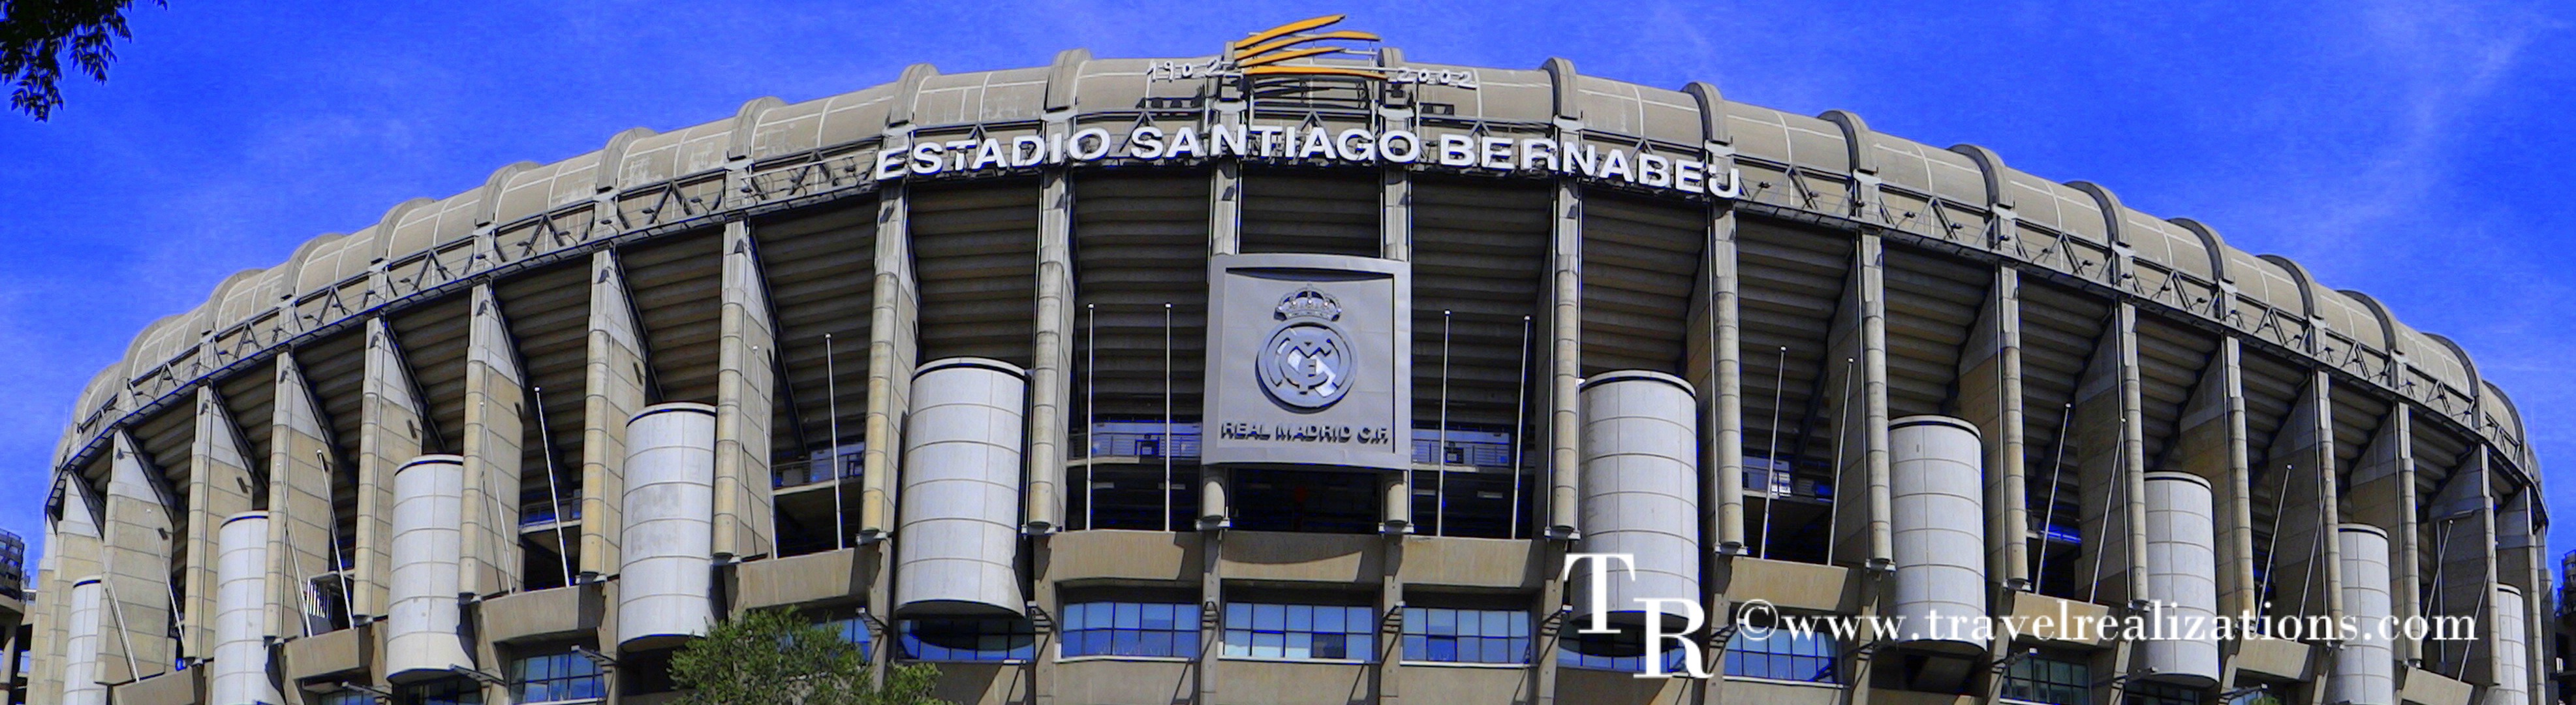 Santiago Bernabeu Stadium - The home of Real Madrid!